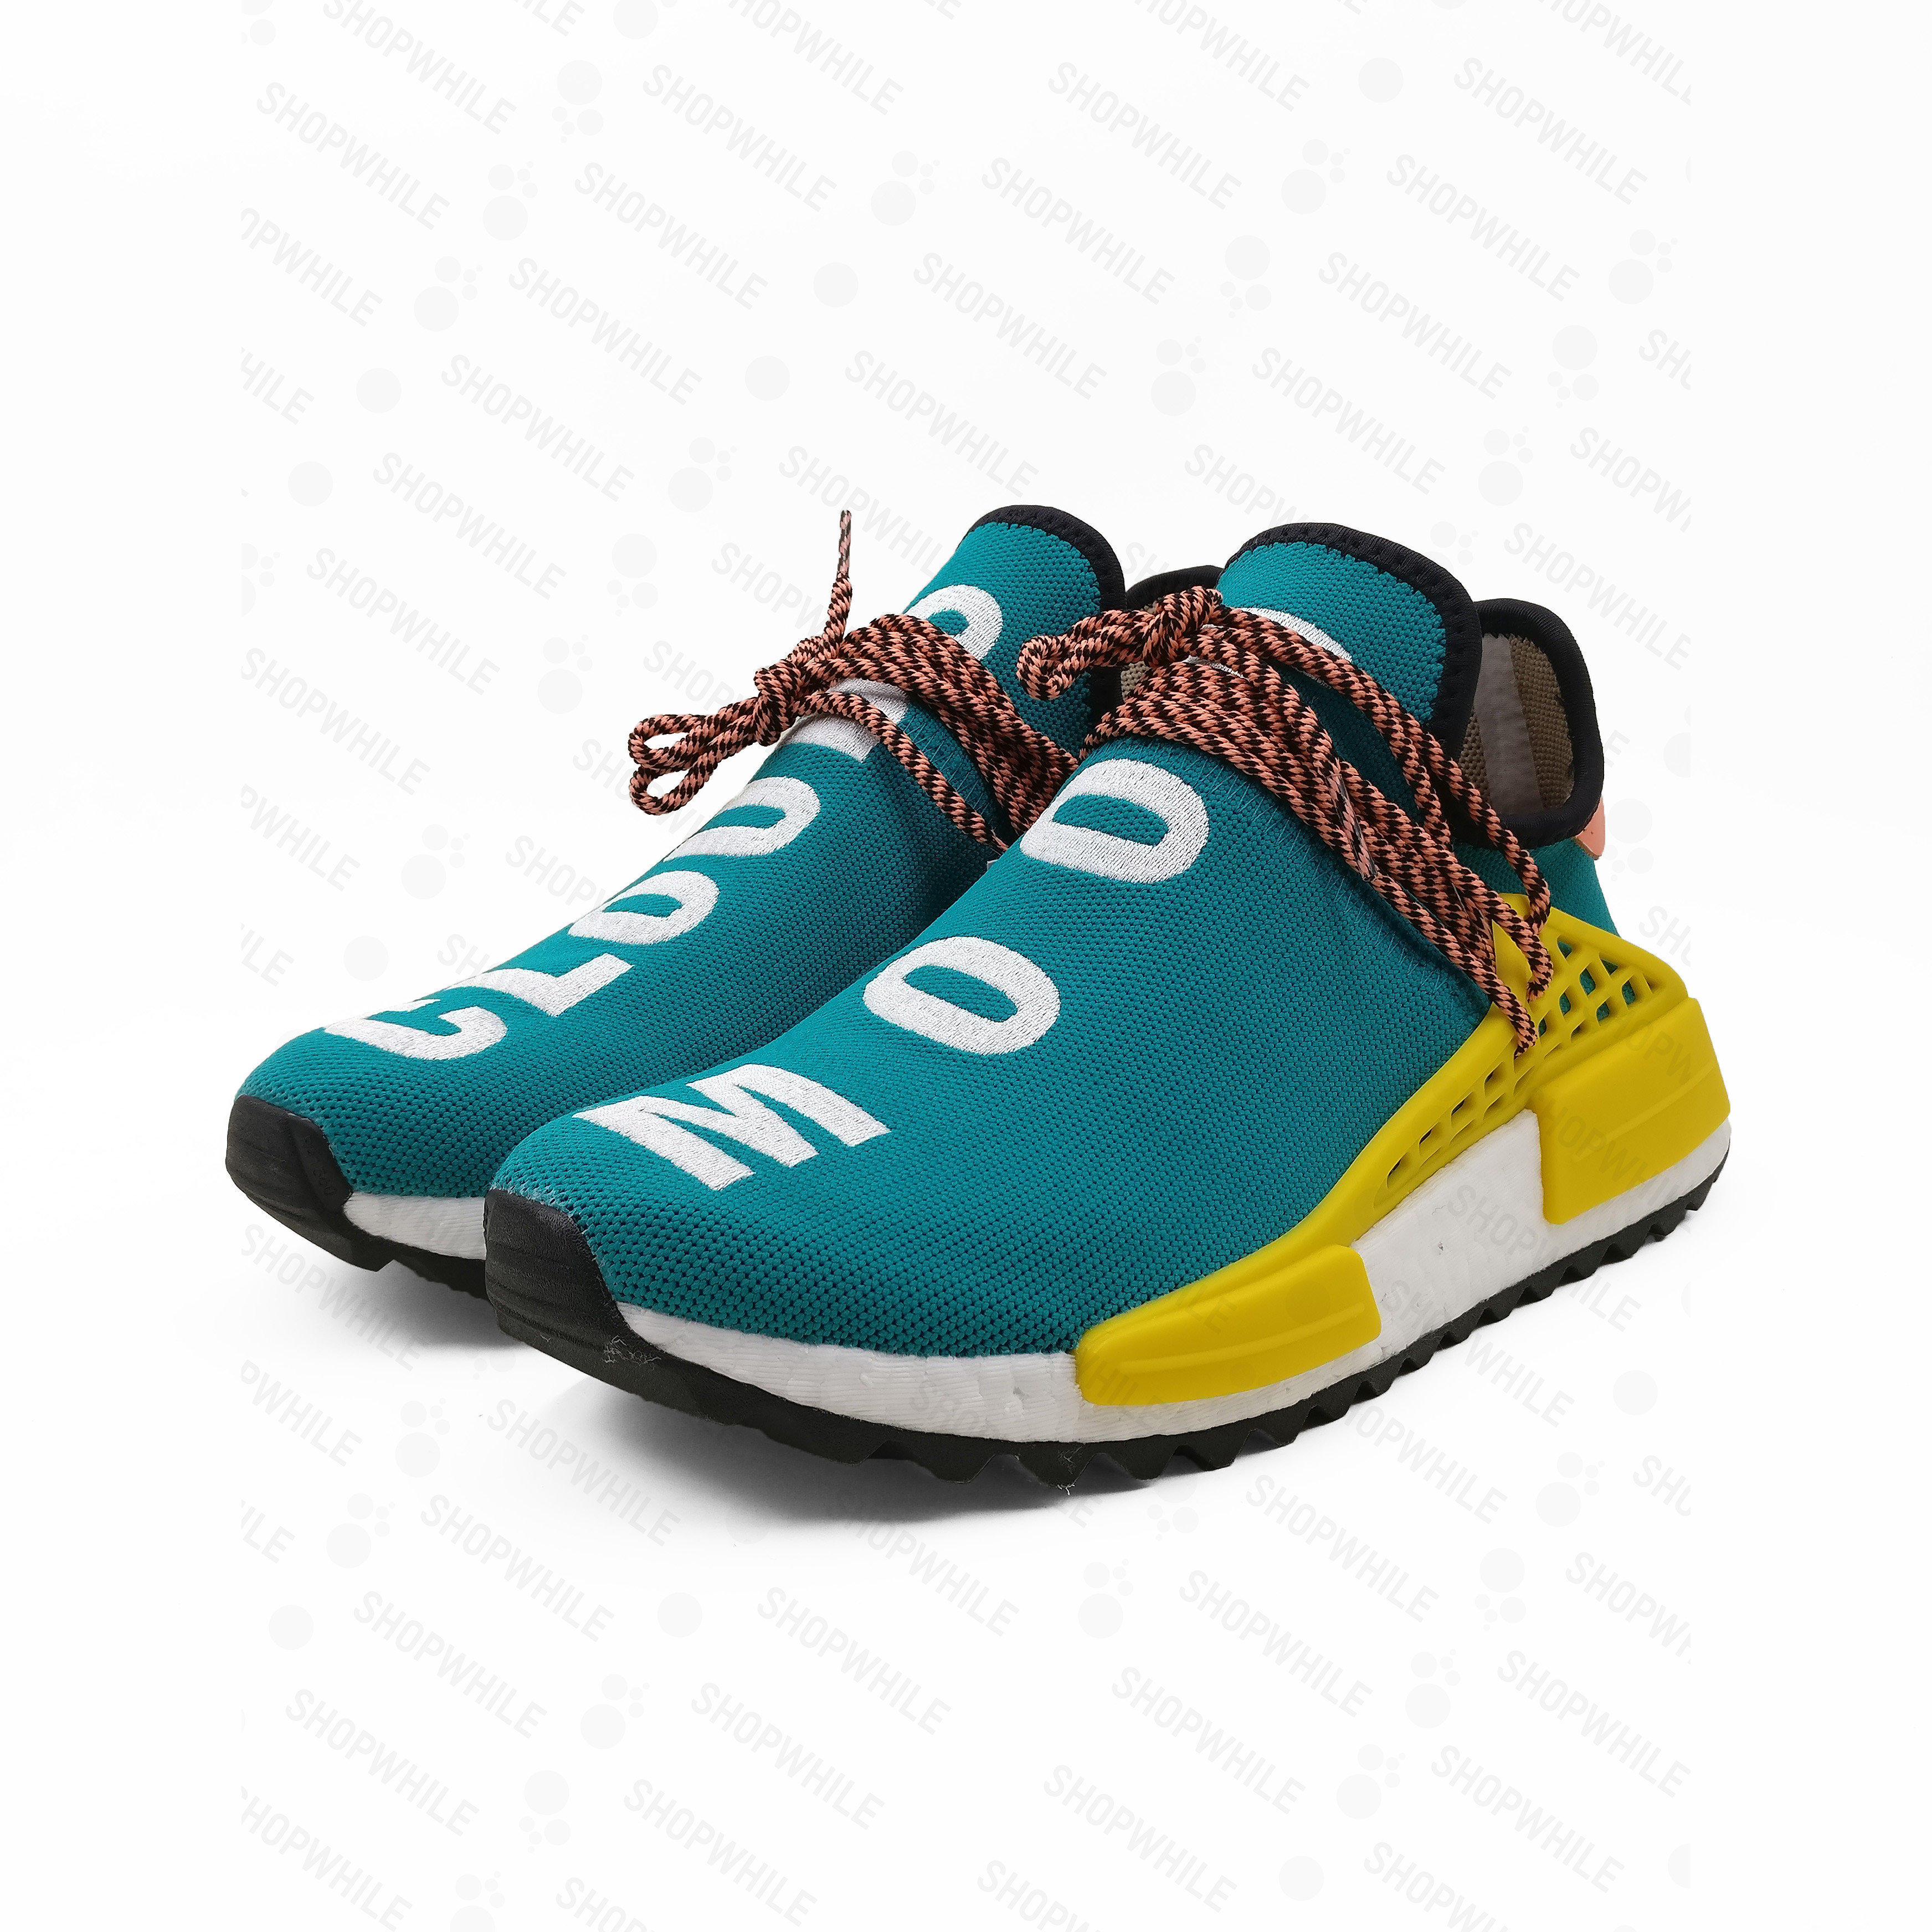 Cheap NMD Human Race TR Shoes for Sale, Buy Adidas NMD Human